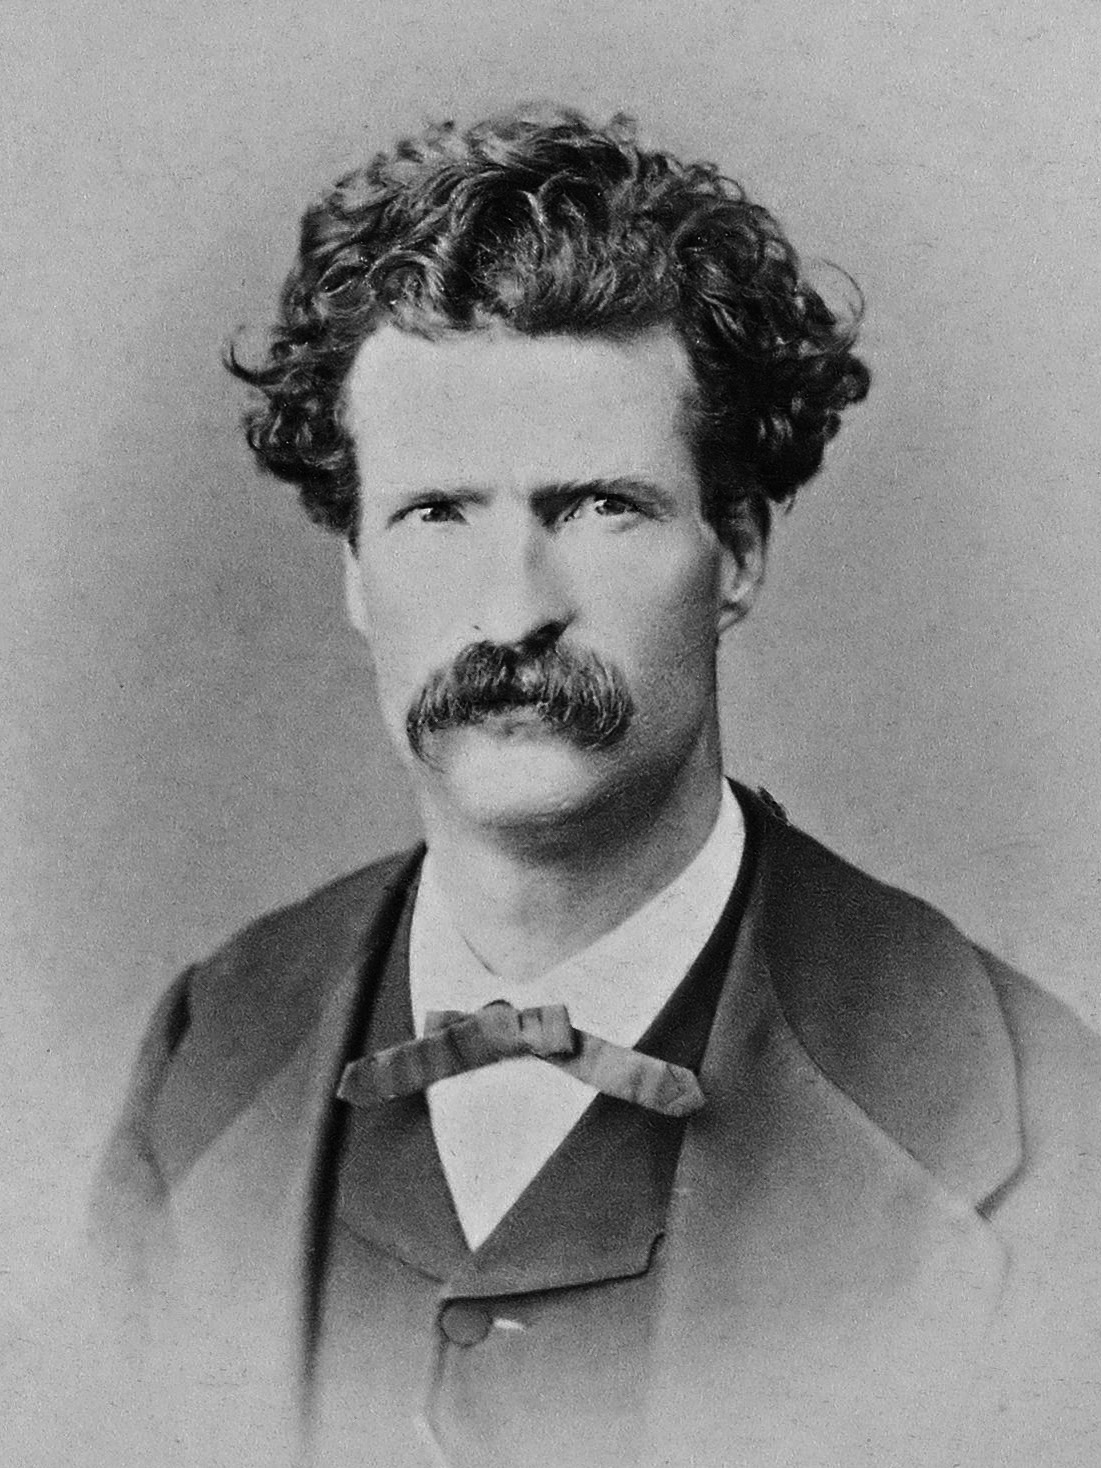 Photograph of Mark Twain as a young man